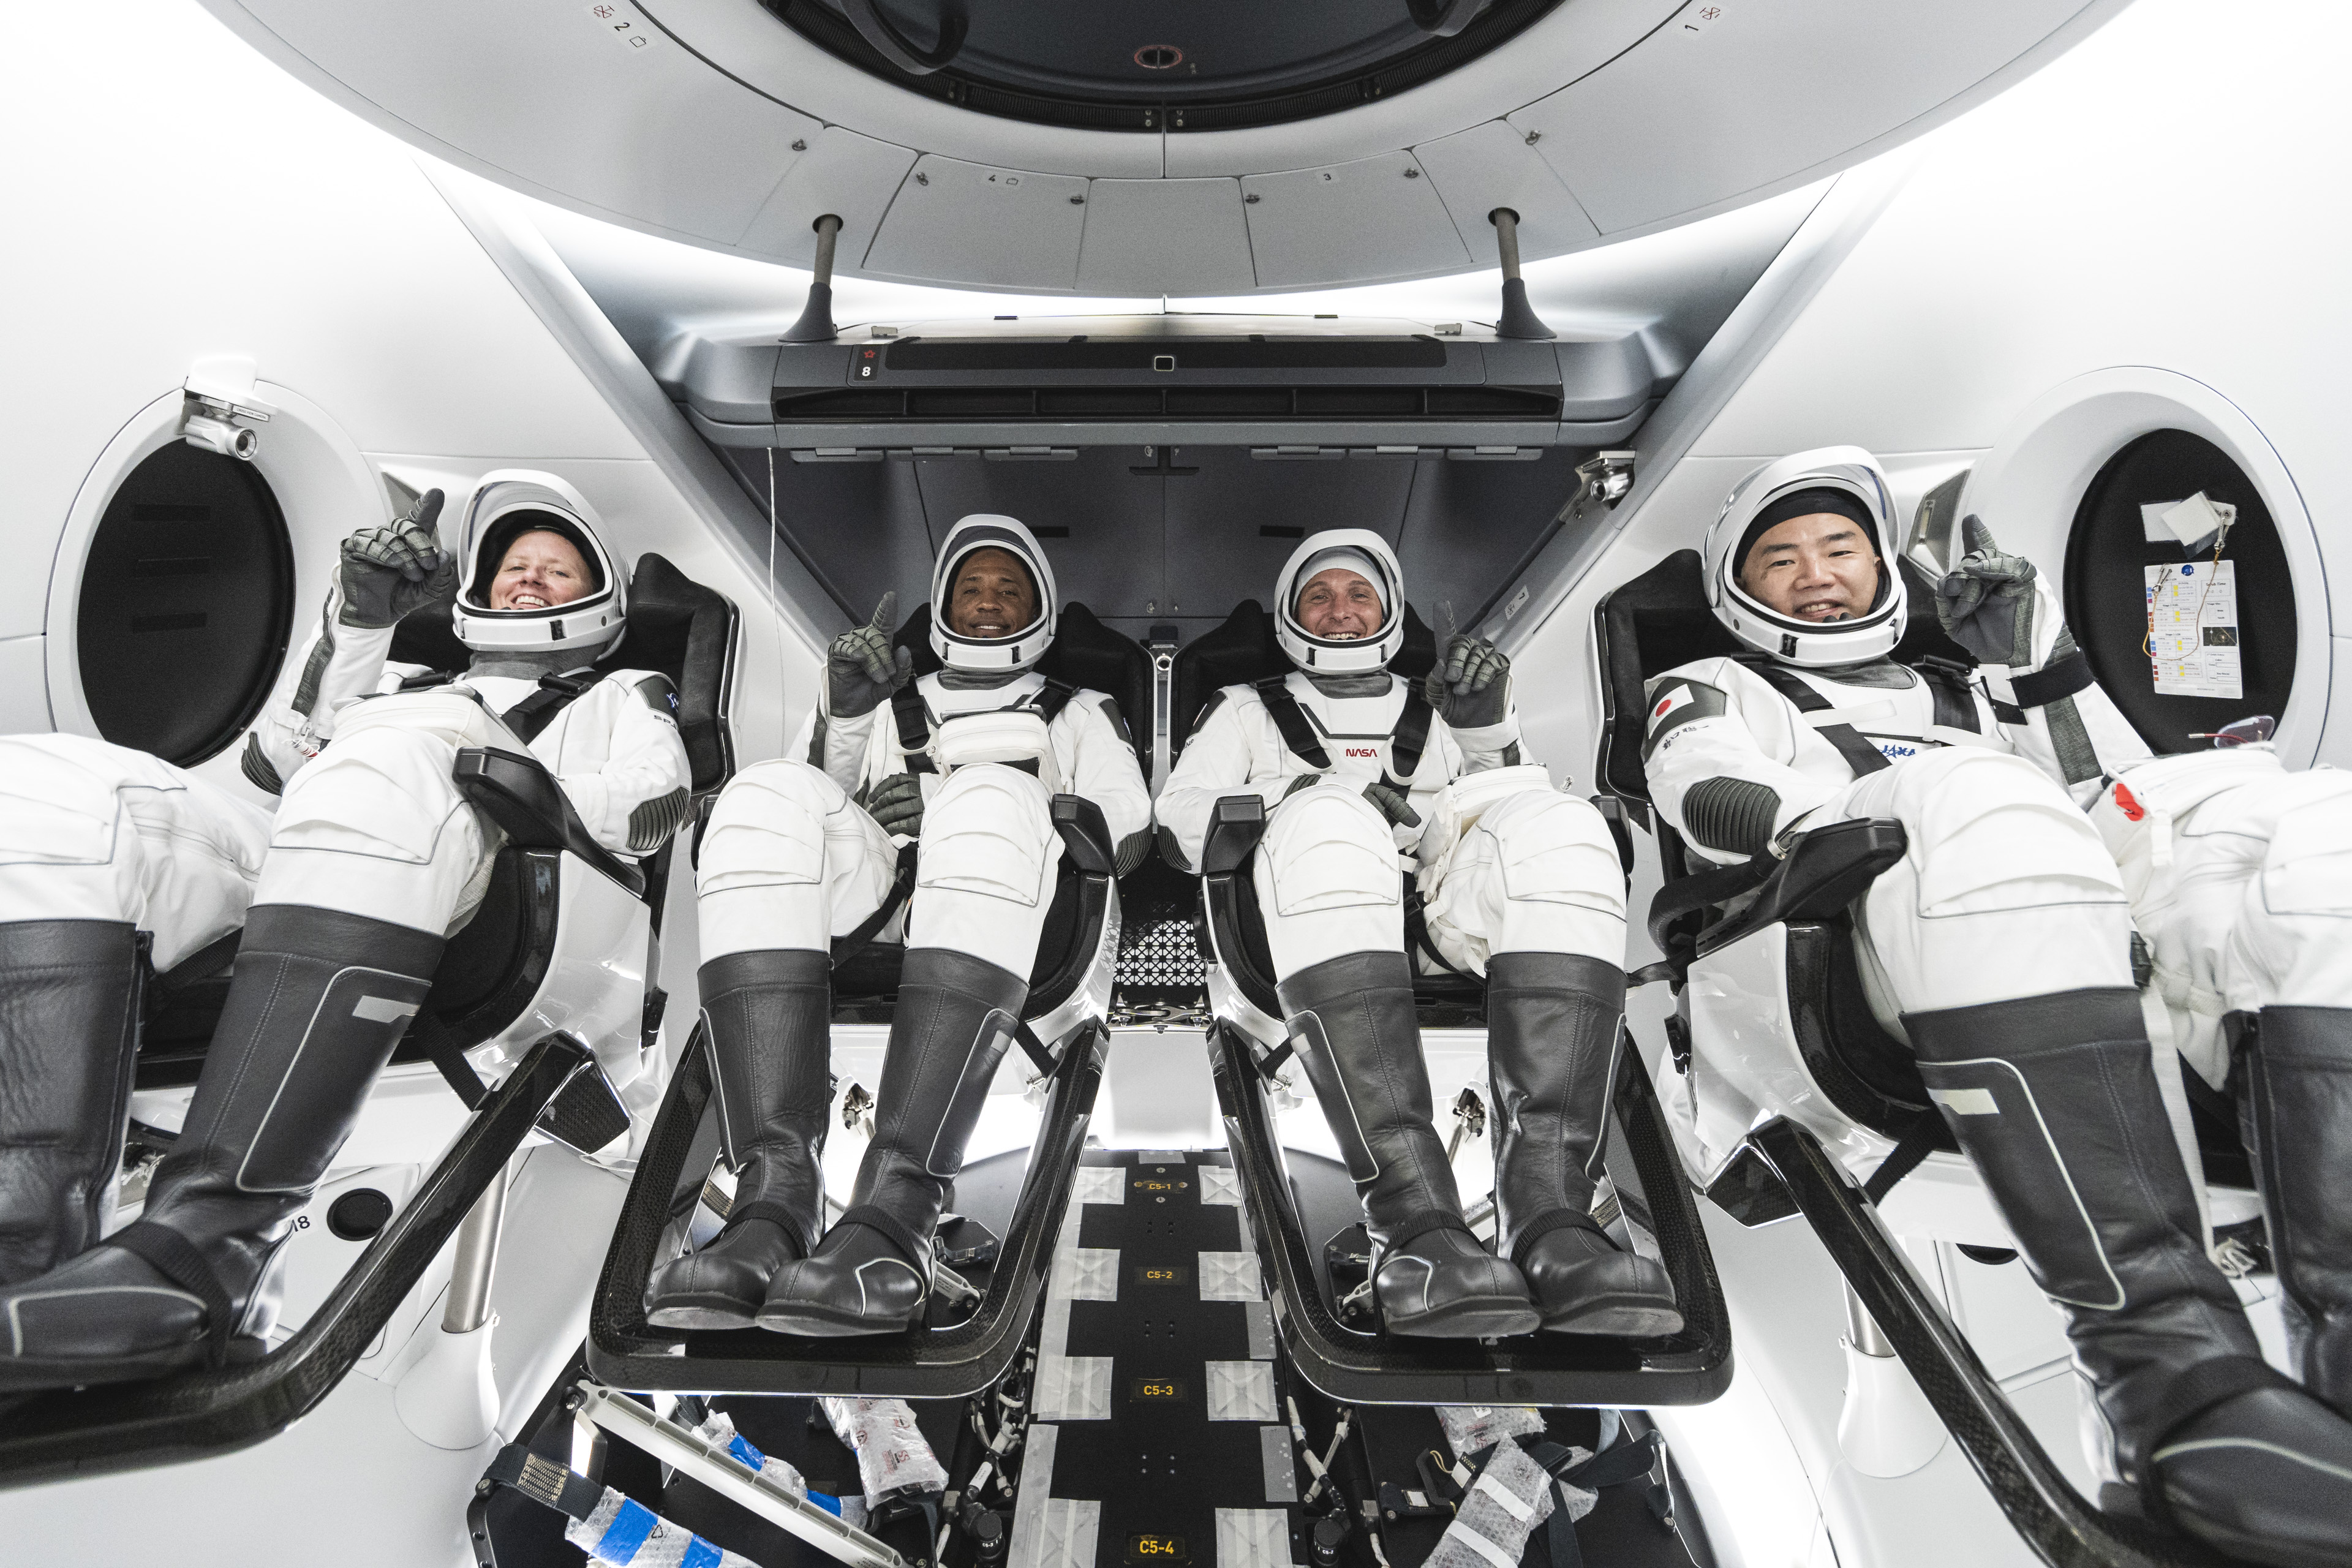 NASA, SpaceX Invite Media to Crew-1 Mission Update, Target New Date | NASA